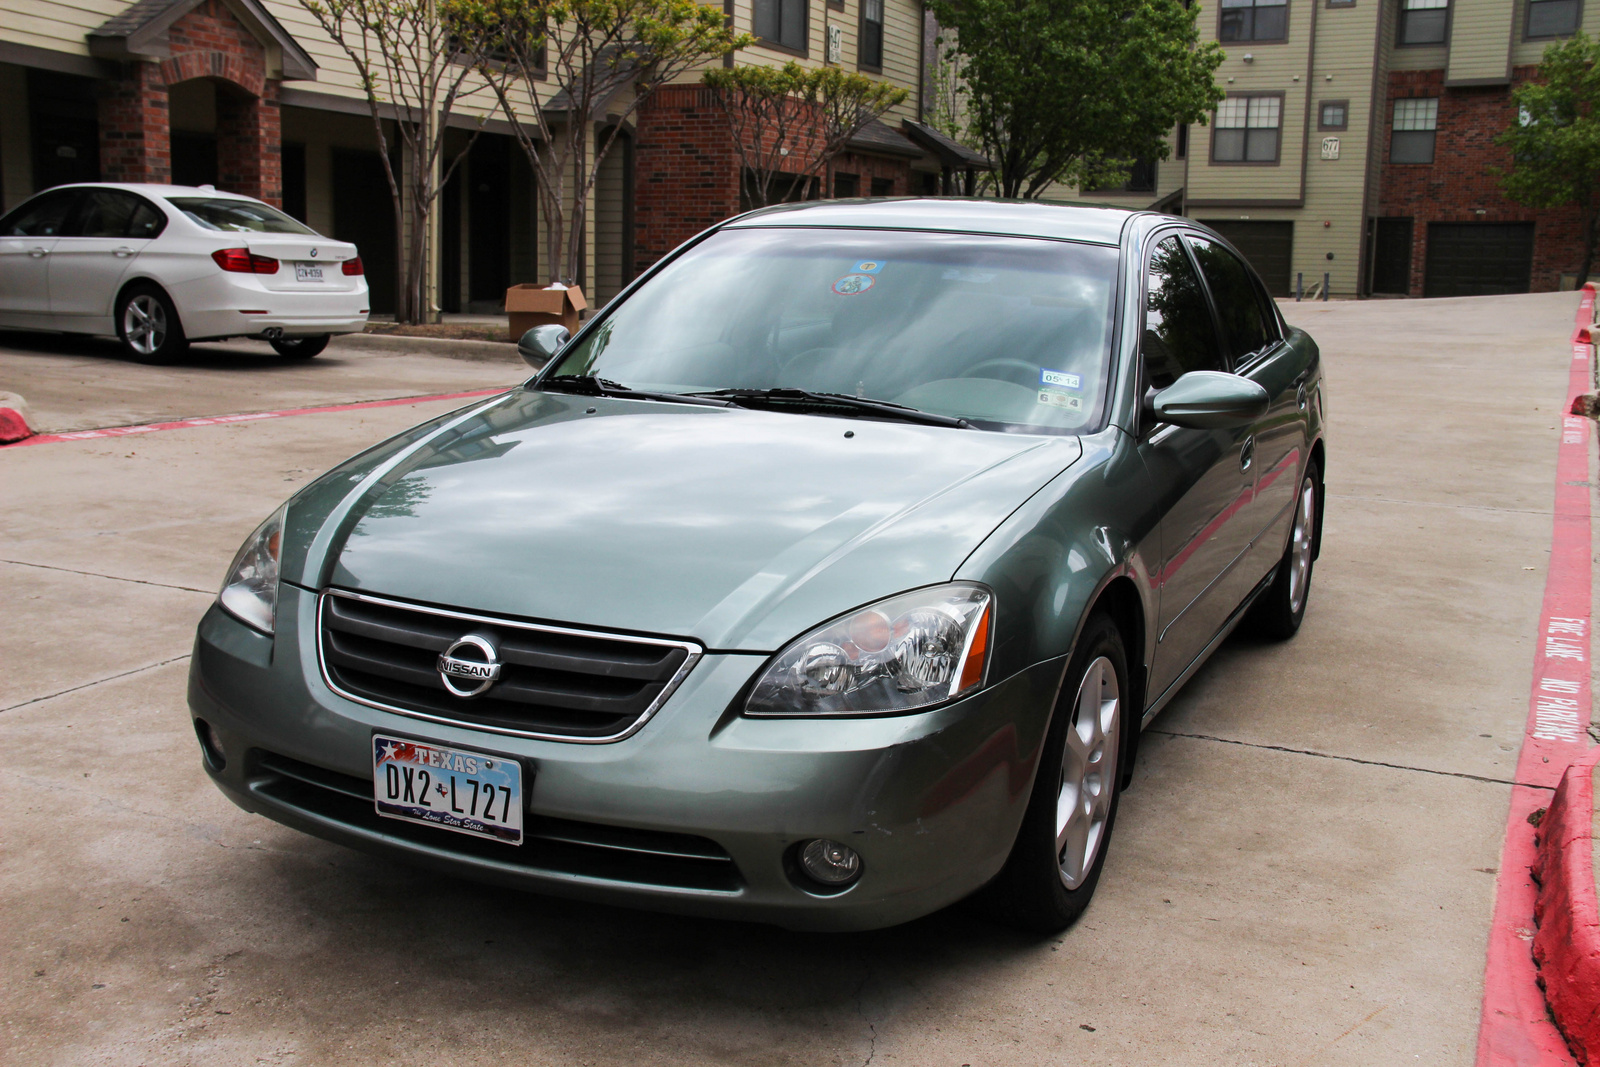 2002 Nissan Altima (l30) iii – pictures, information and specs